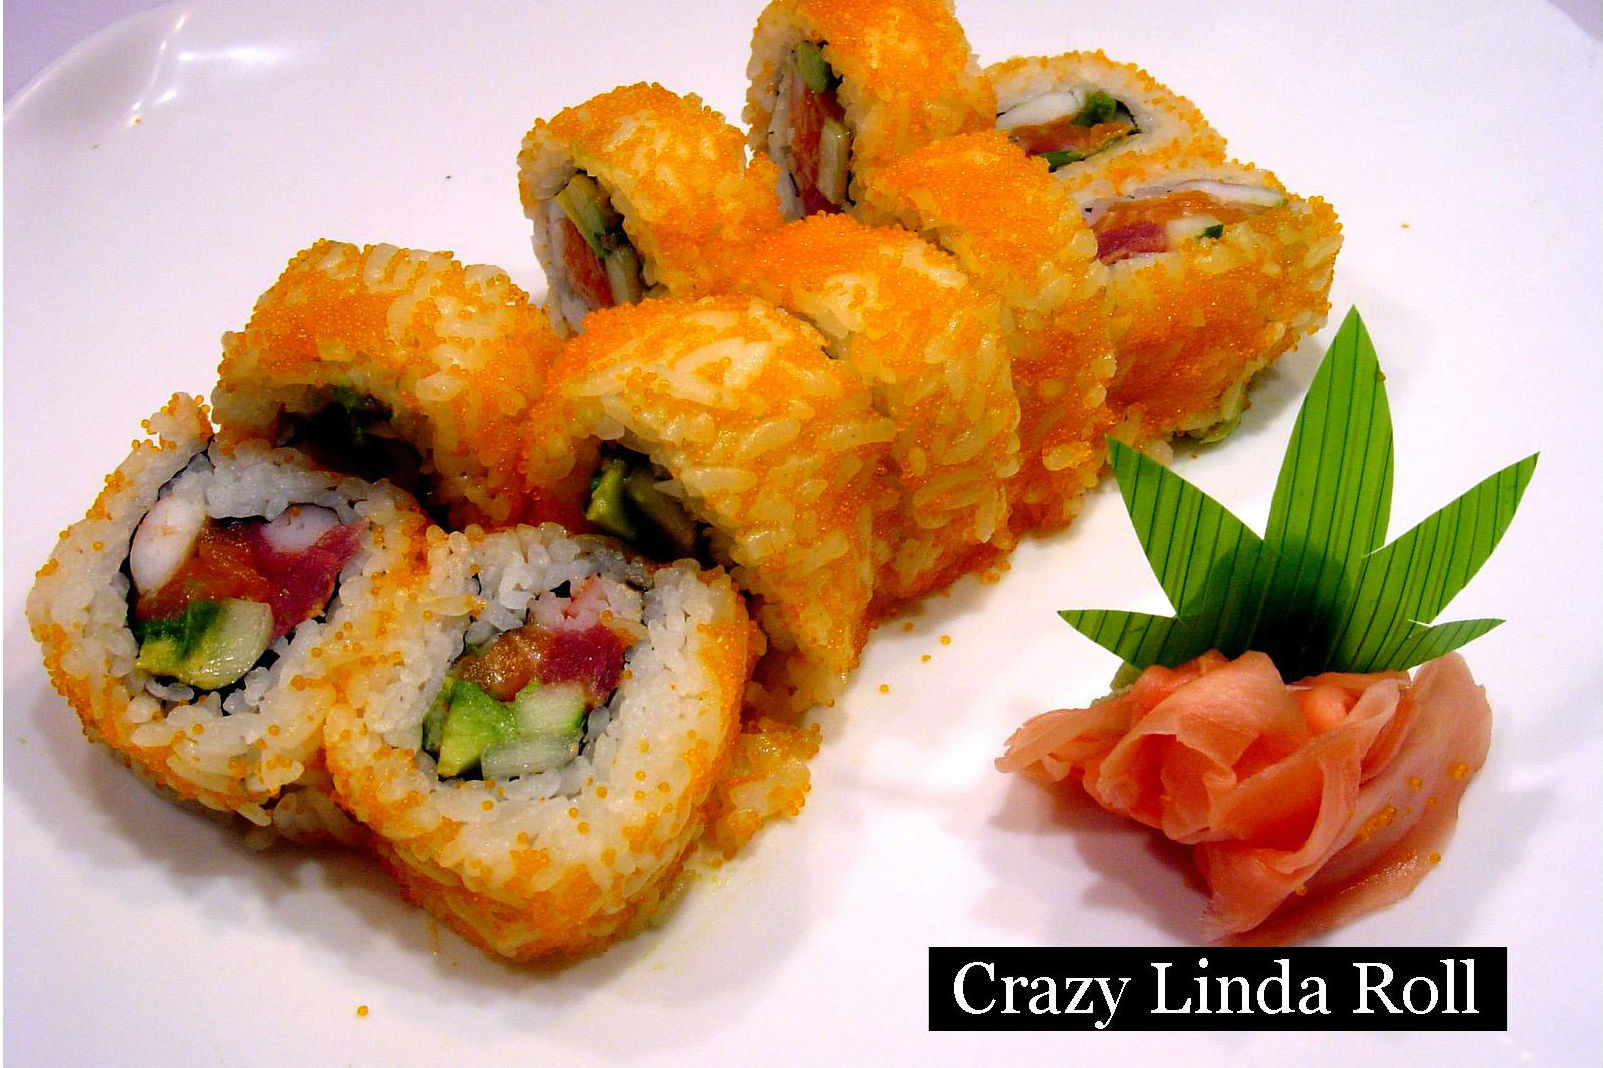 lunch sushi special crazy linda roll